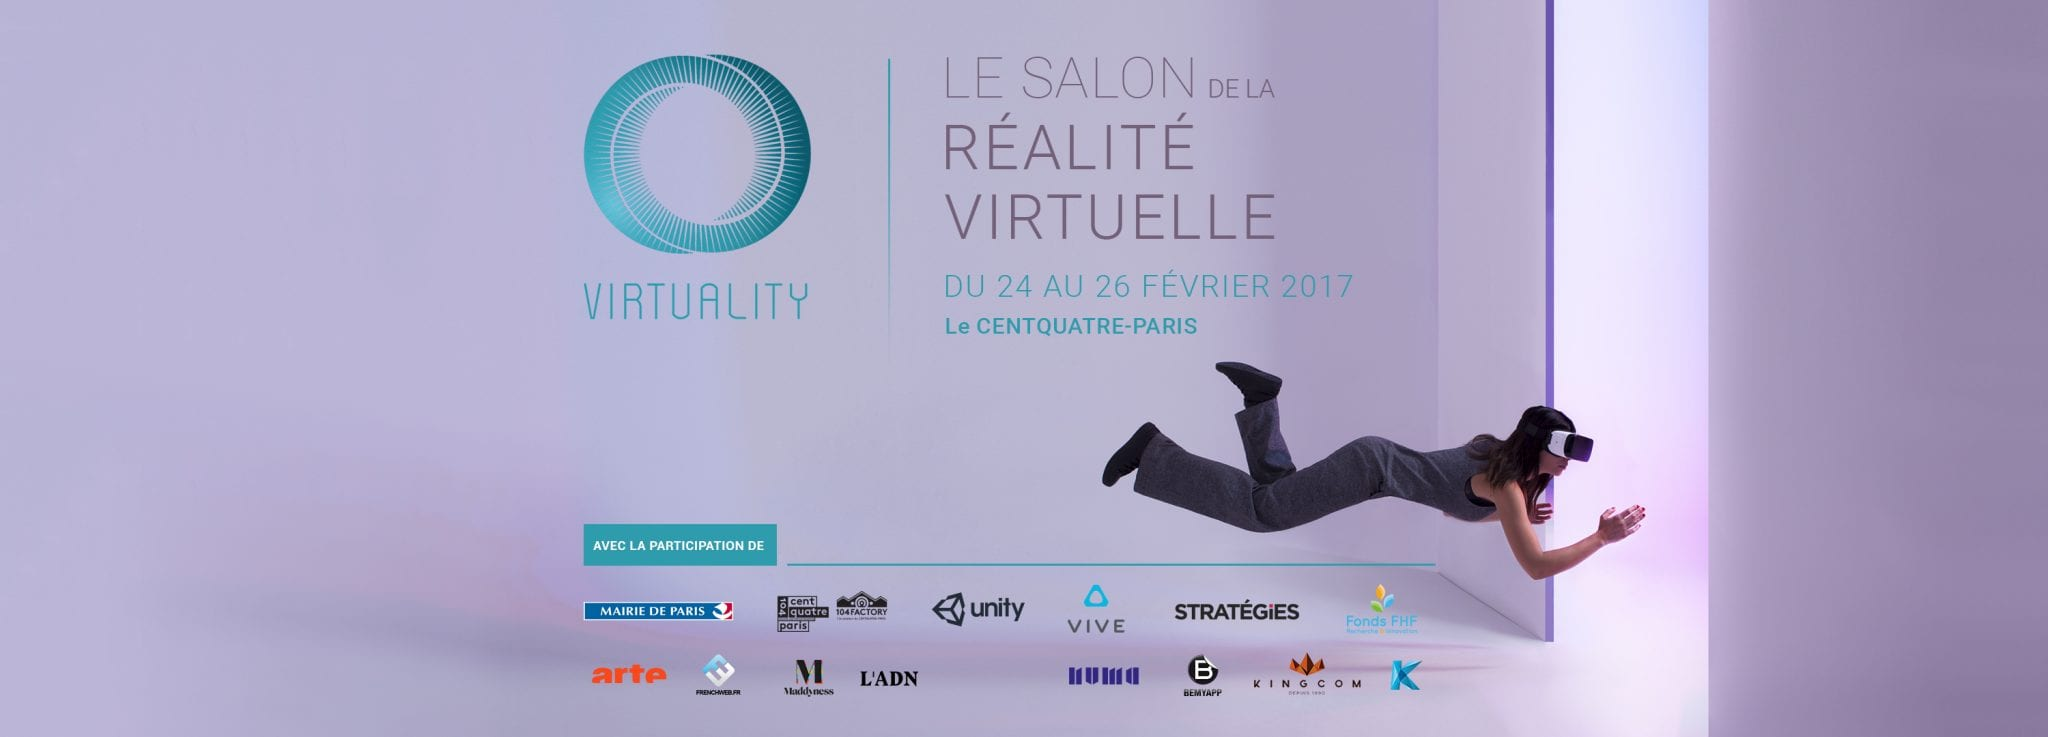 Cinestic accompagne ses adh rents au salon virtuality for Salon a paris ce weekend